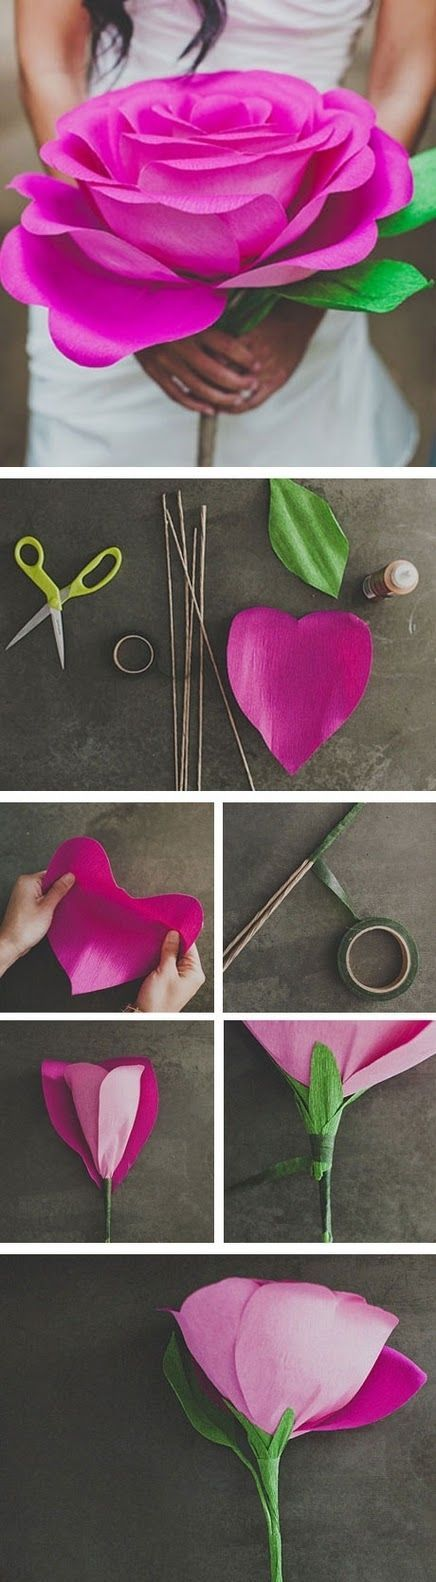 Make Mom some paper flowers for Mother's Day!